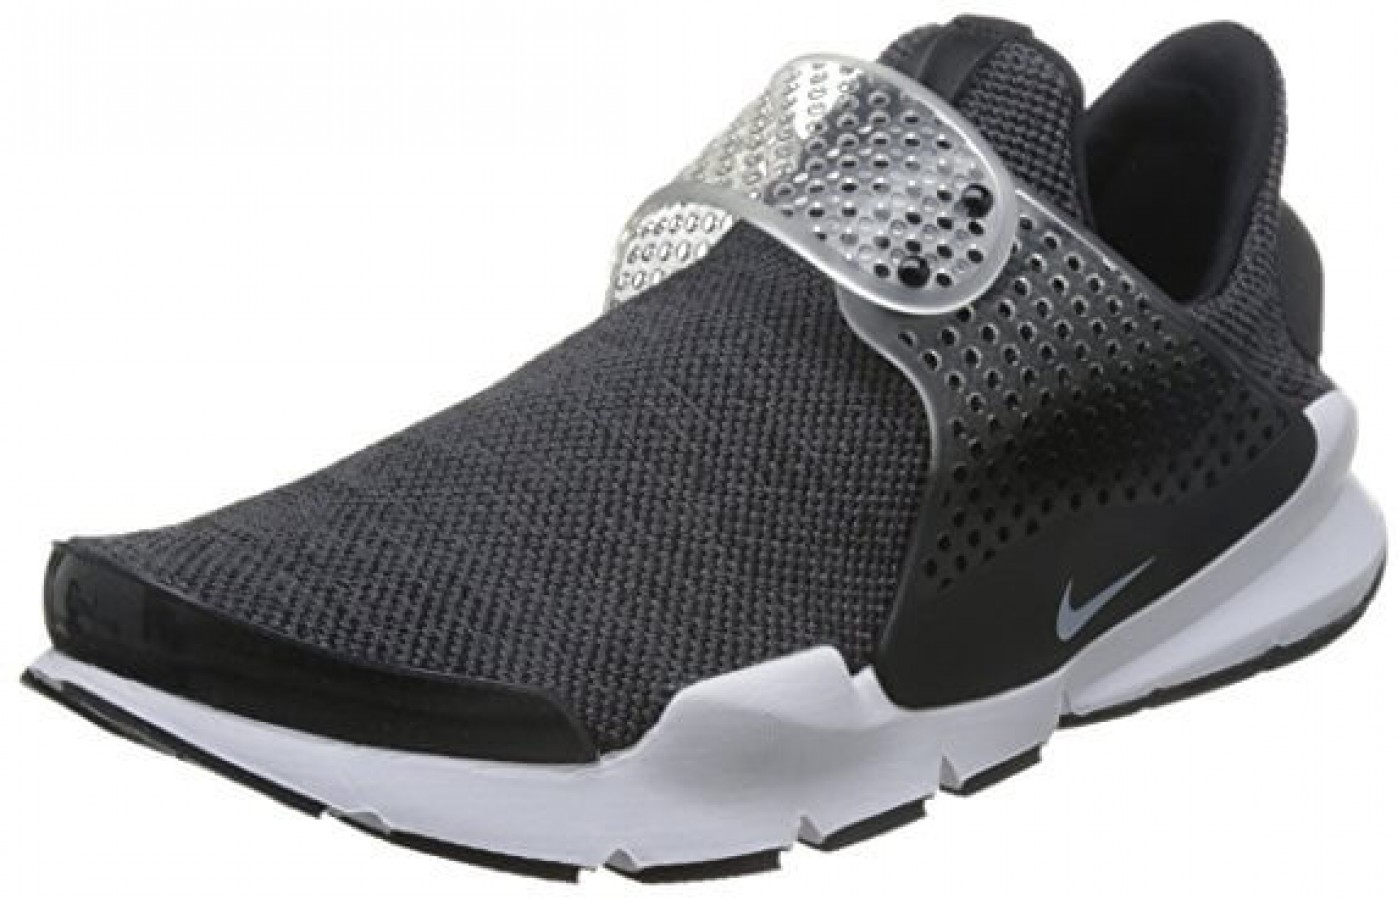 innovative design bdc1a a03ef Nike Sock Dart SE Premium